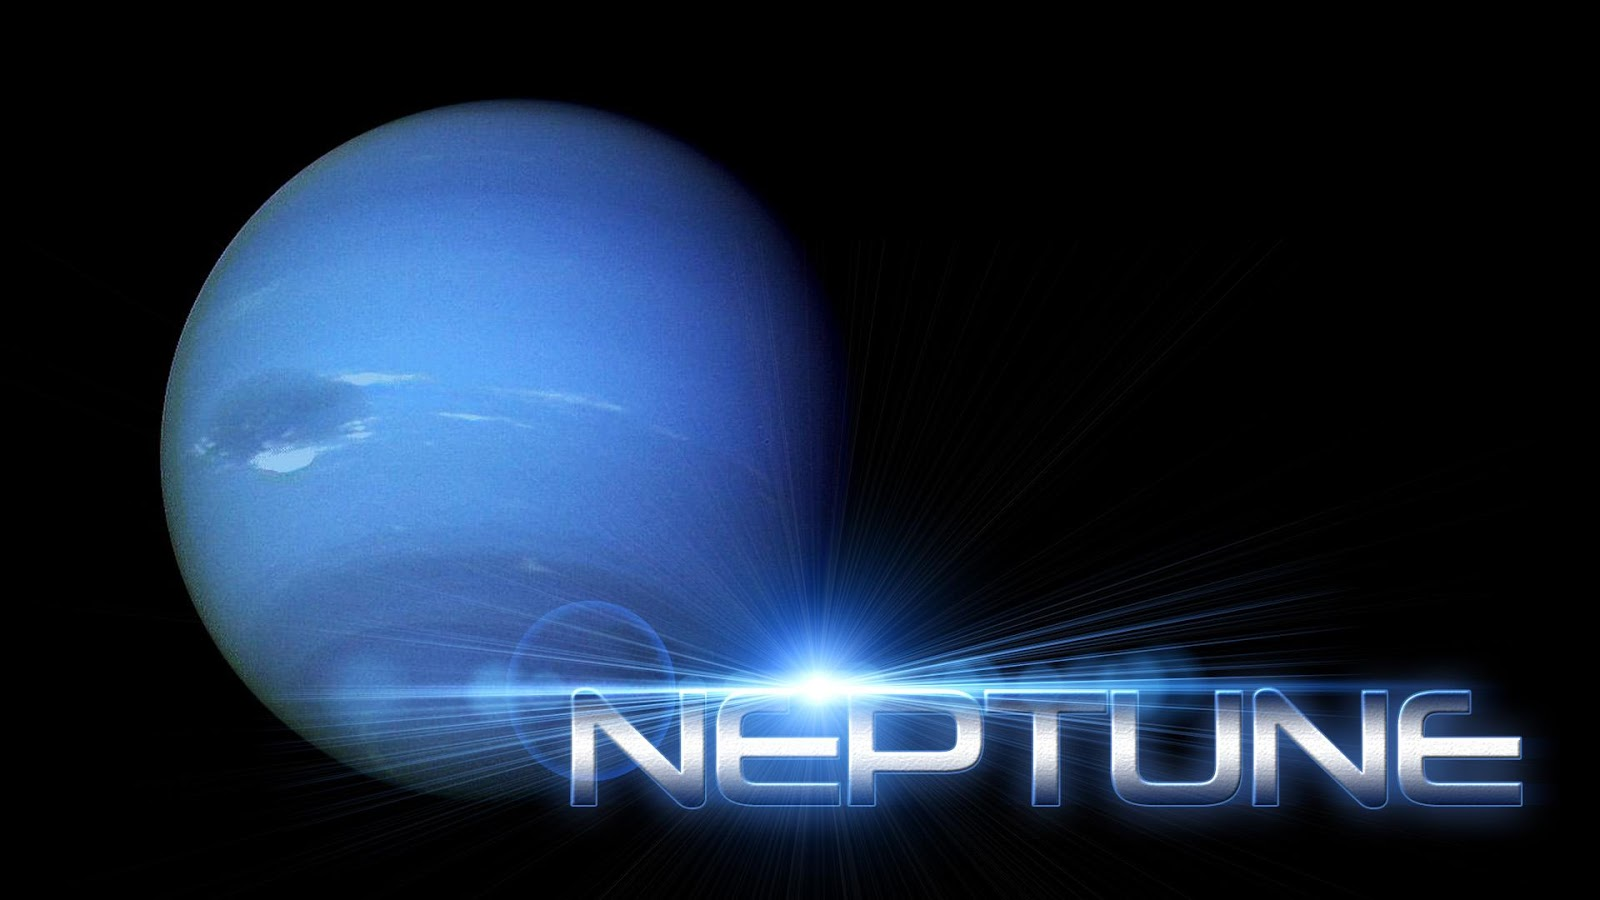 Neptune Planet Live Wallpaper 1 00 Apk Download Android